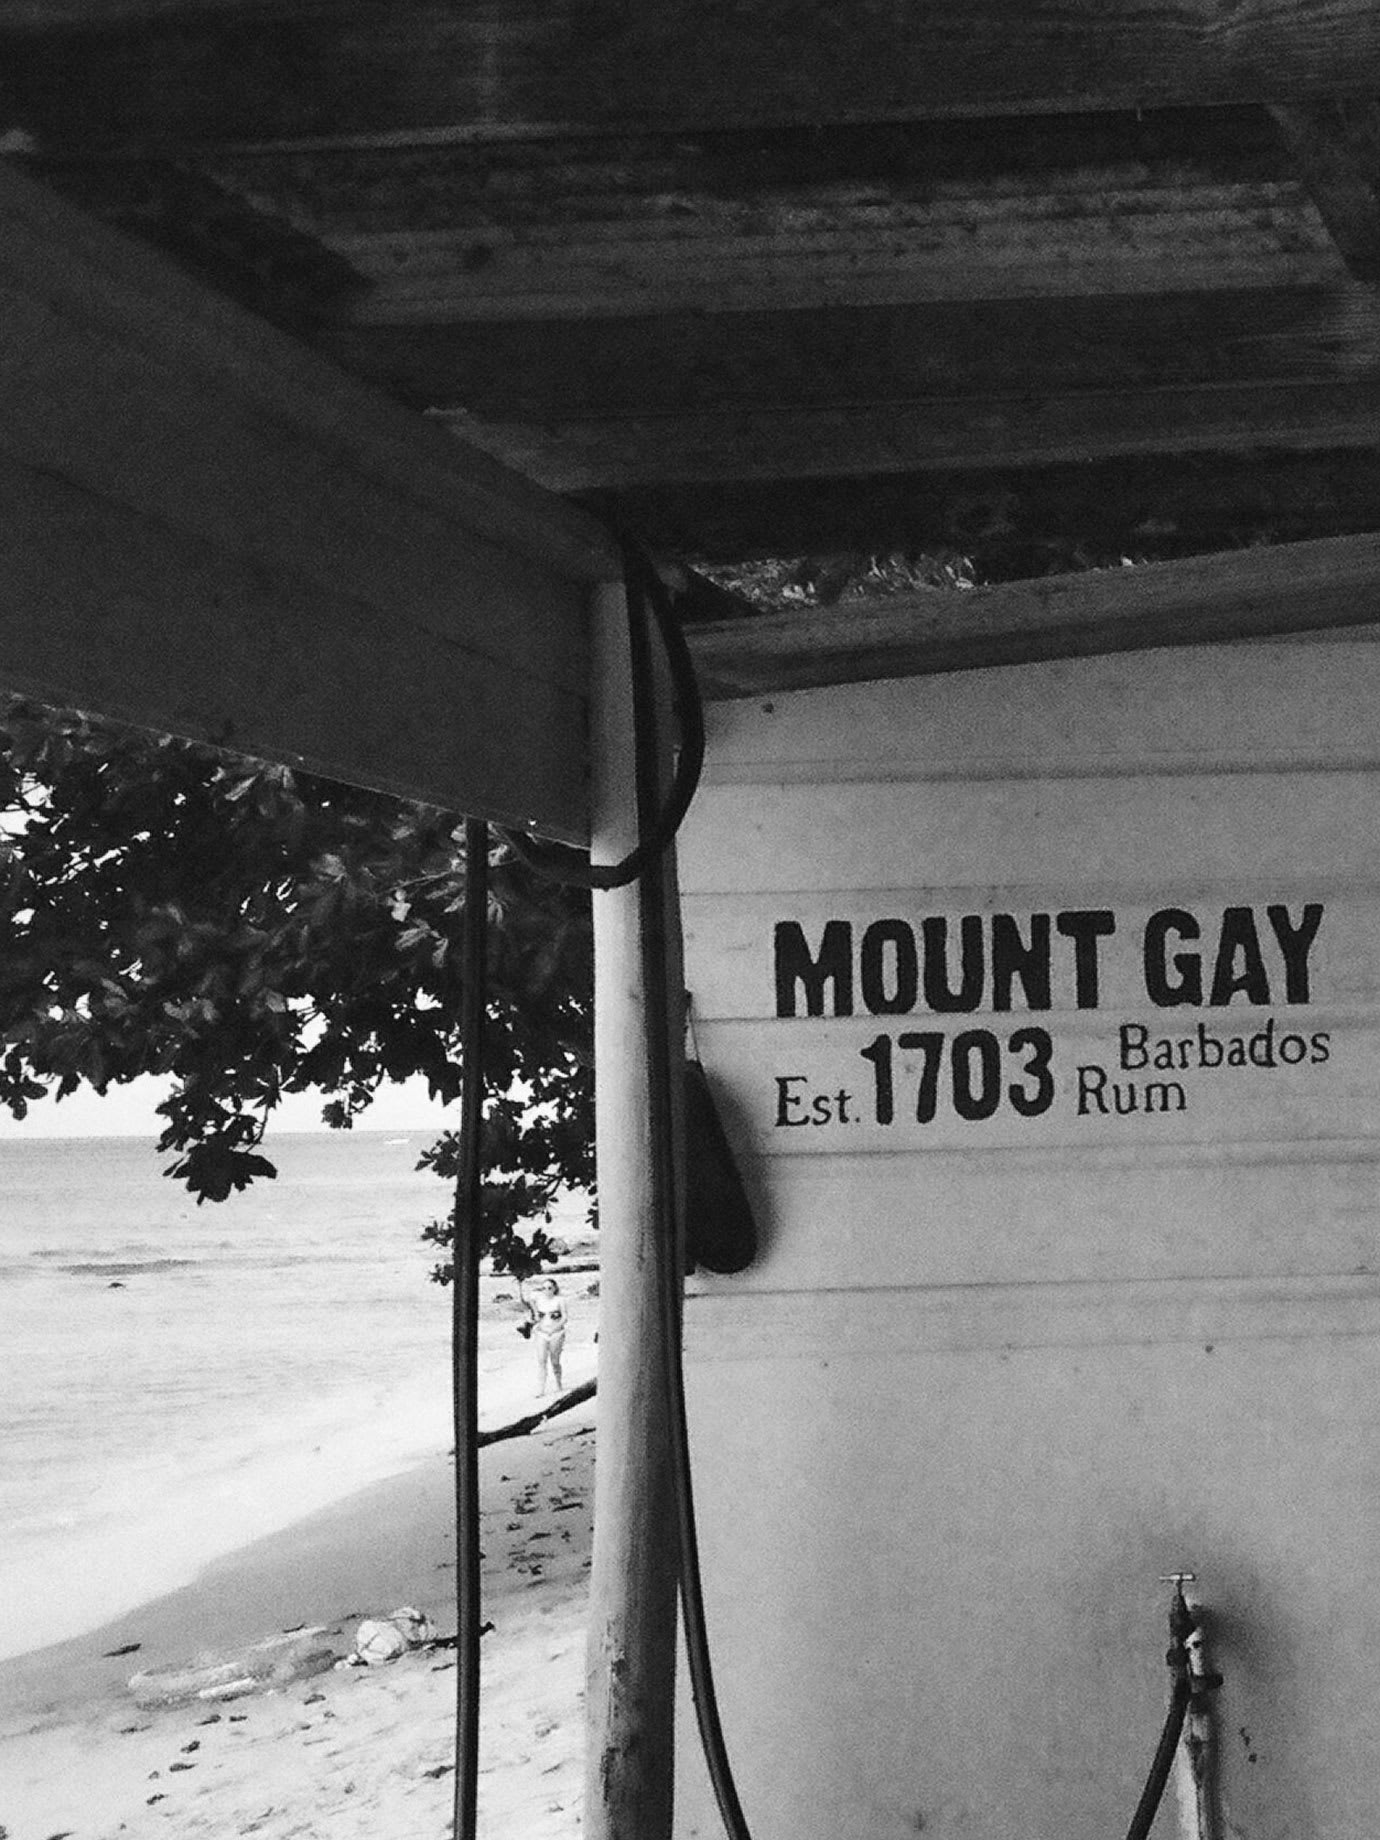 A bar with Mount Gay written on its wall.